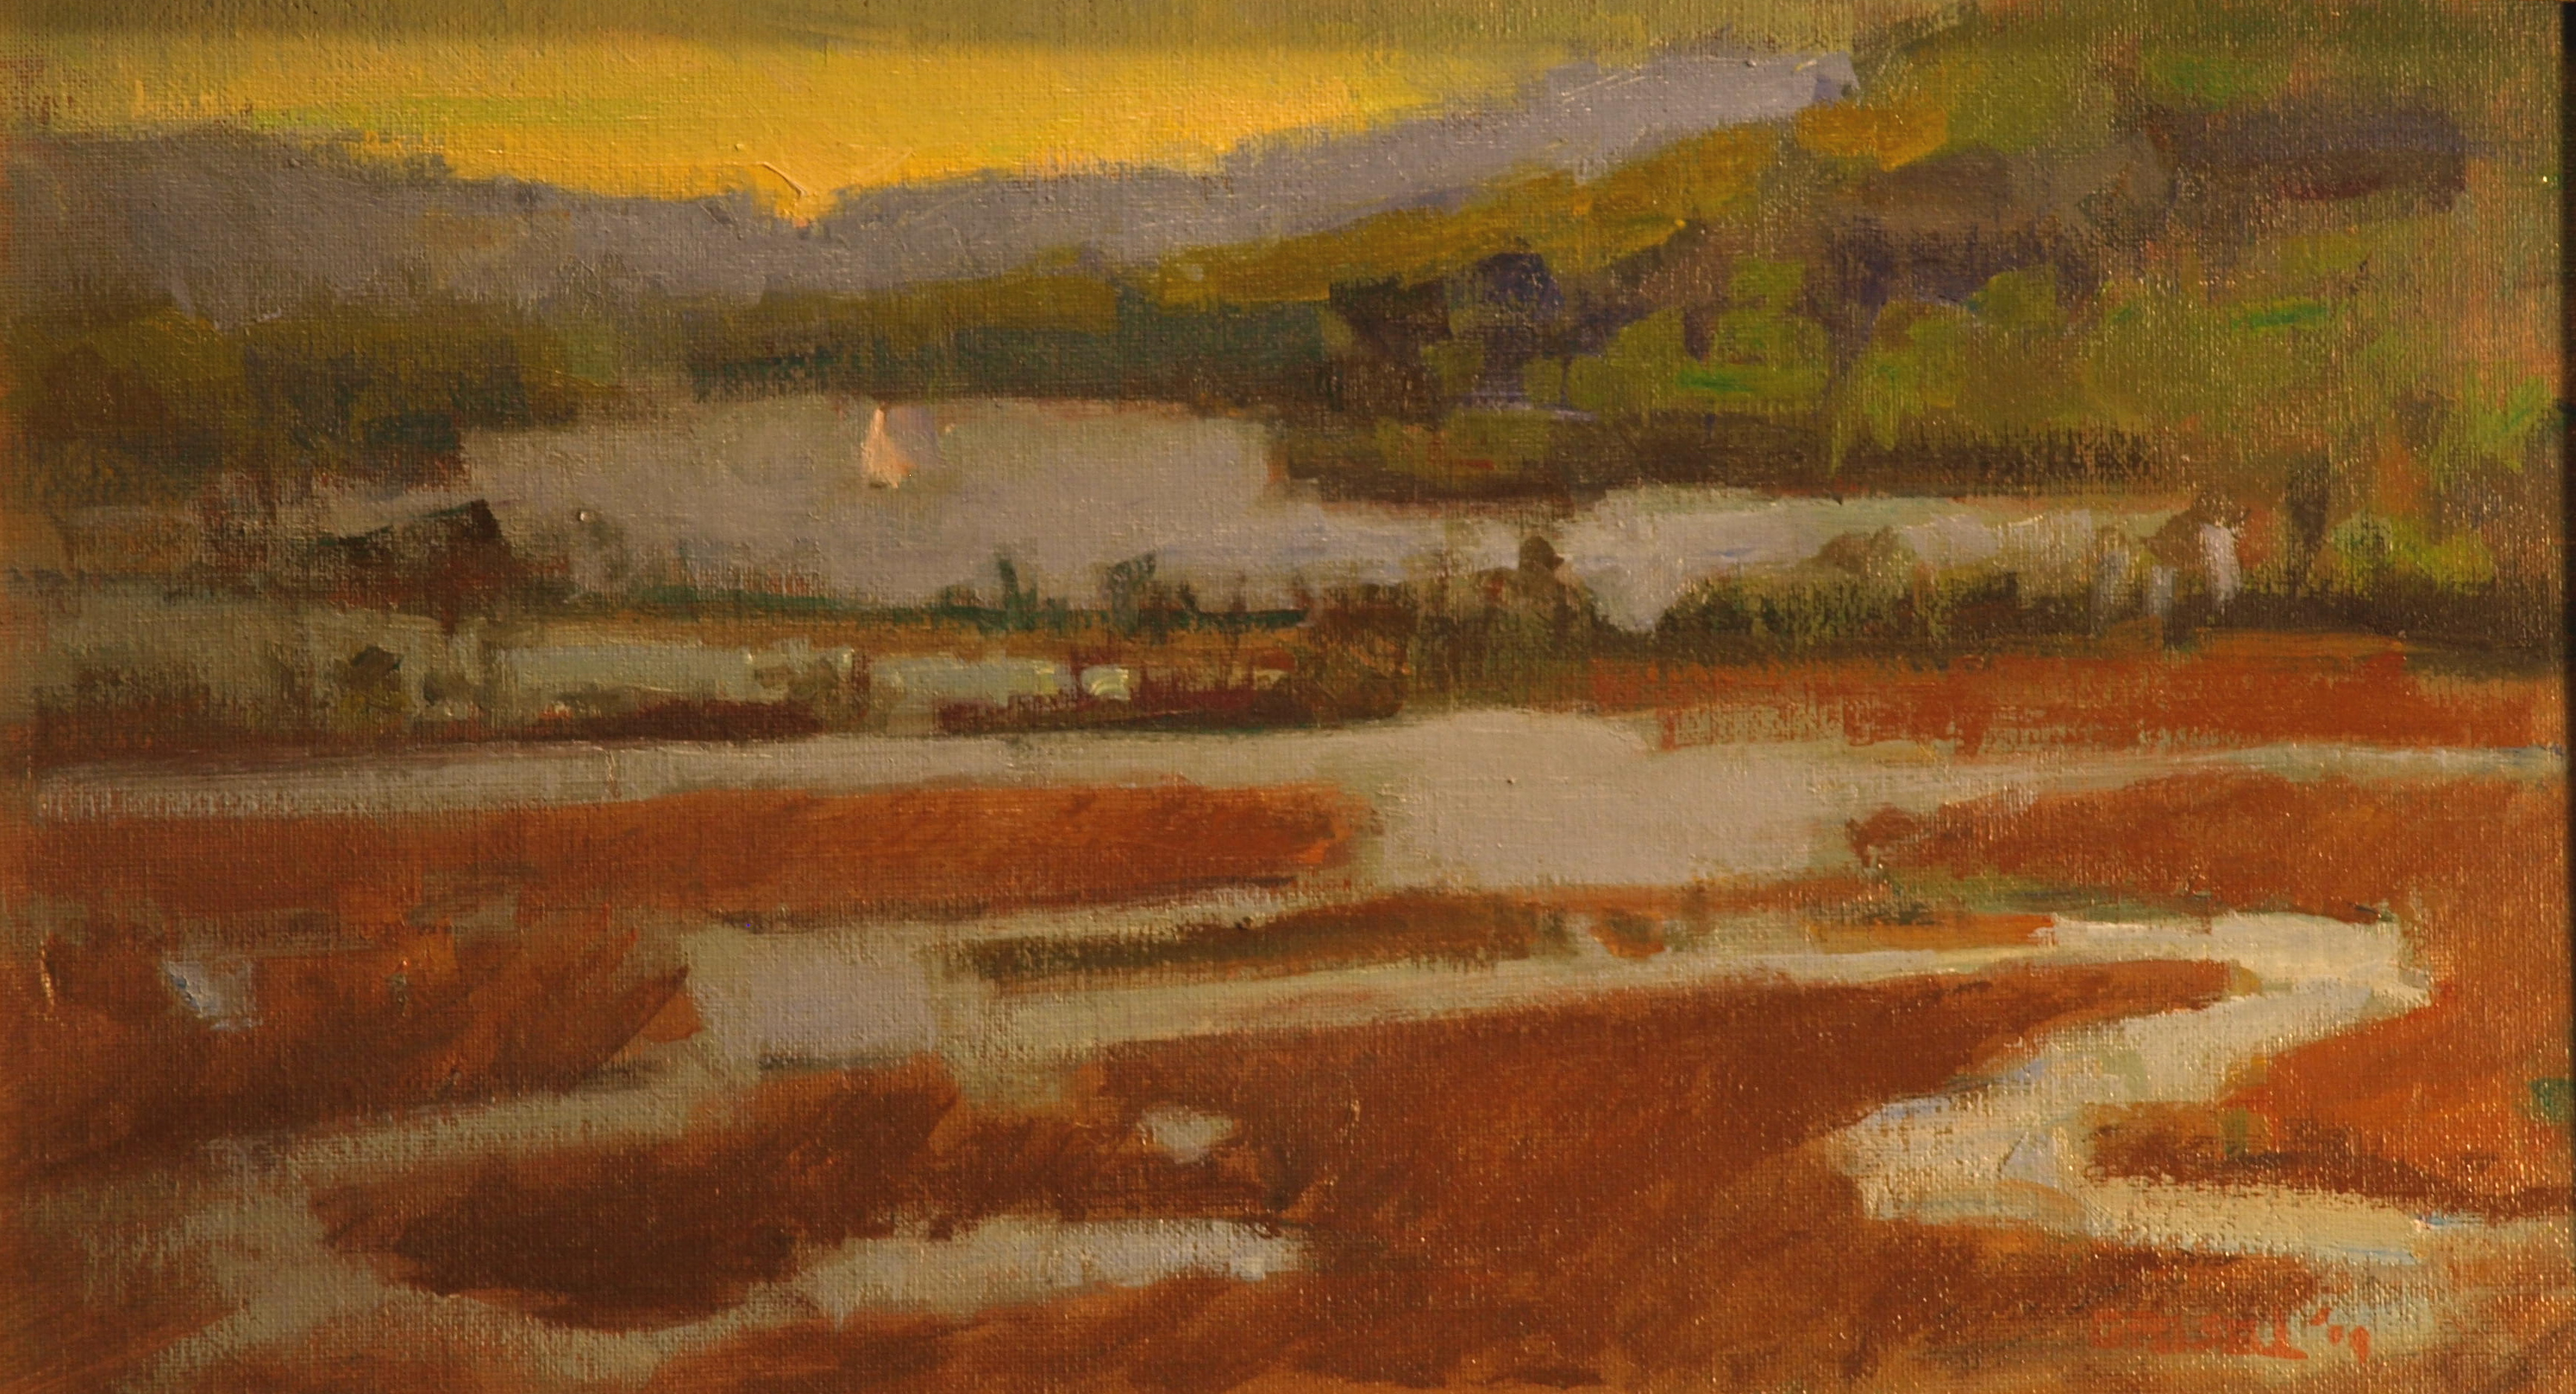 View from Boscobel, Oil on Canvas on Panel, 9 x 16 Inches, by Susan Grisell, $250